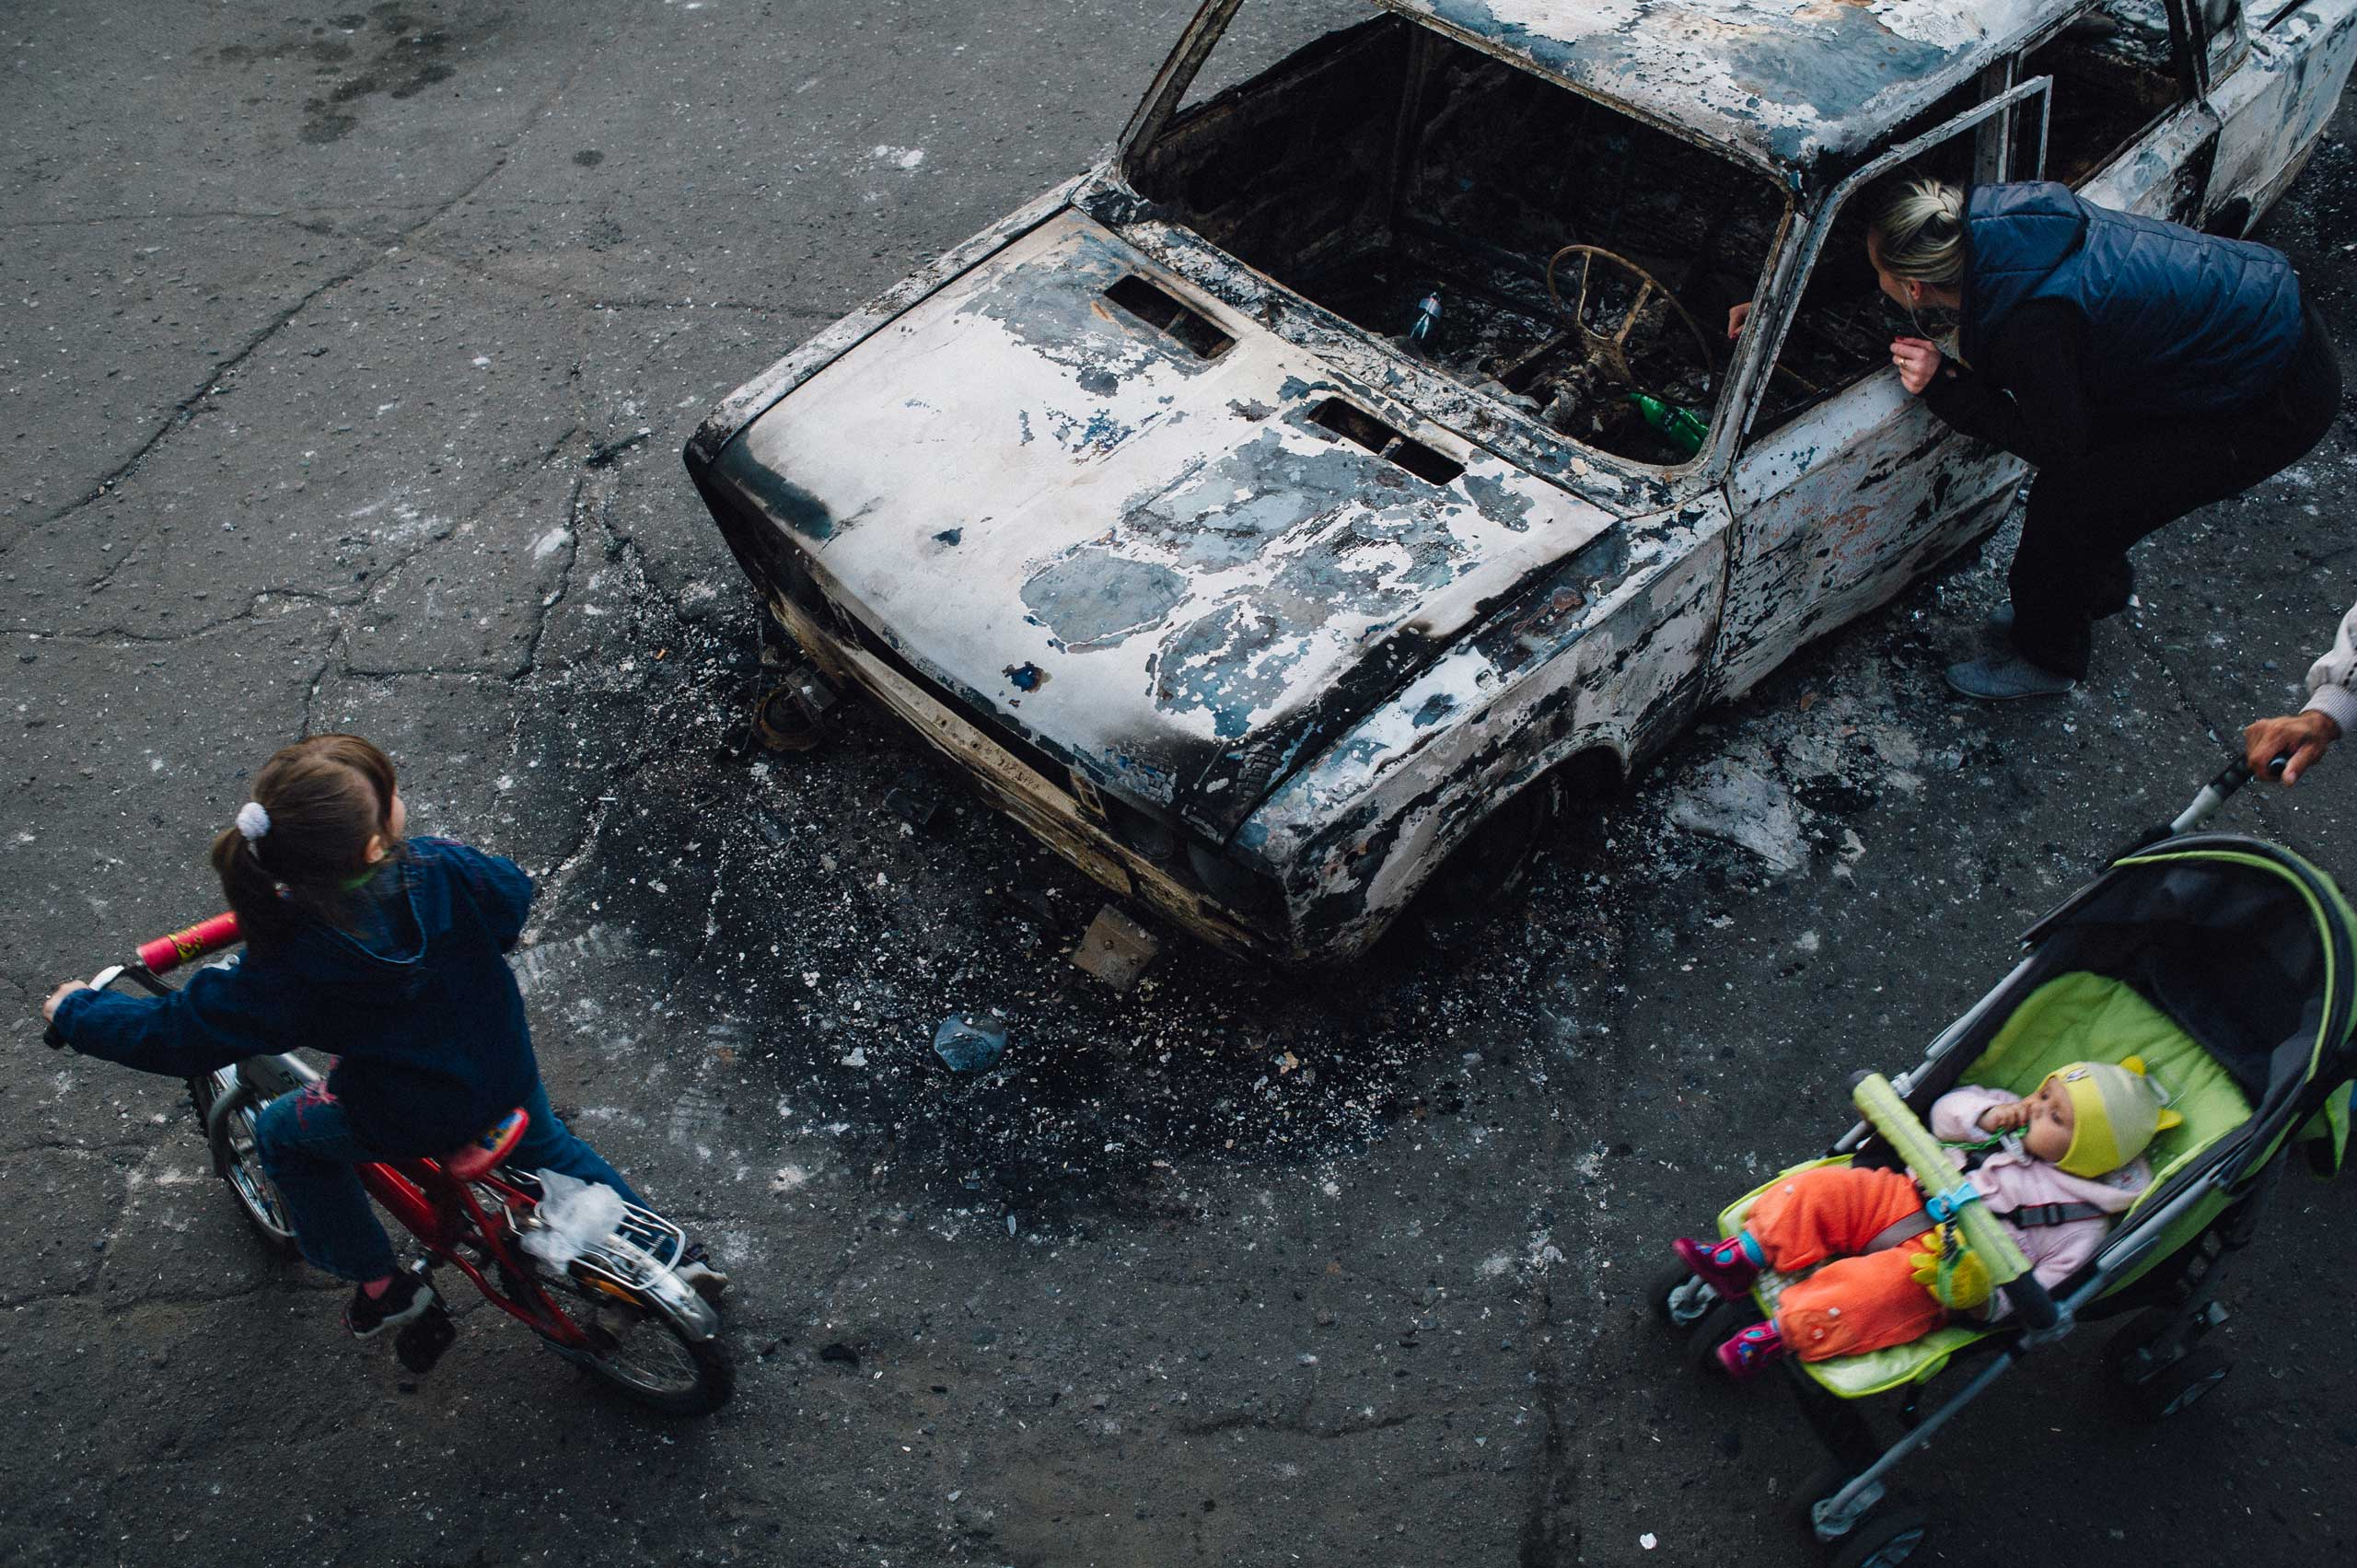 May 3, 2014. Local citizens gather near destroyed vehicles that were burned by pro-Russian separatists in Kramatorsk, in eastern Ukraine. From  This is War.  May 19, 2014 issue.